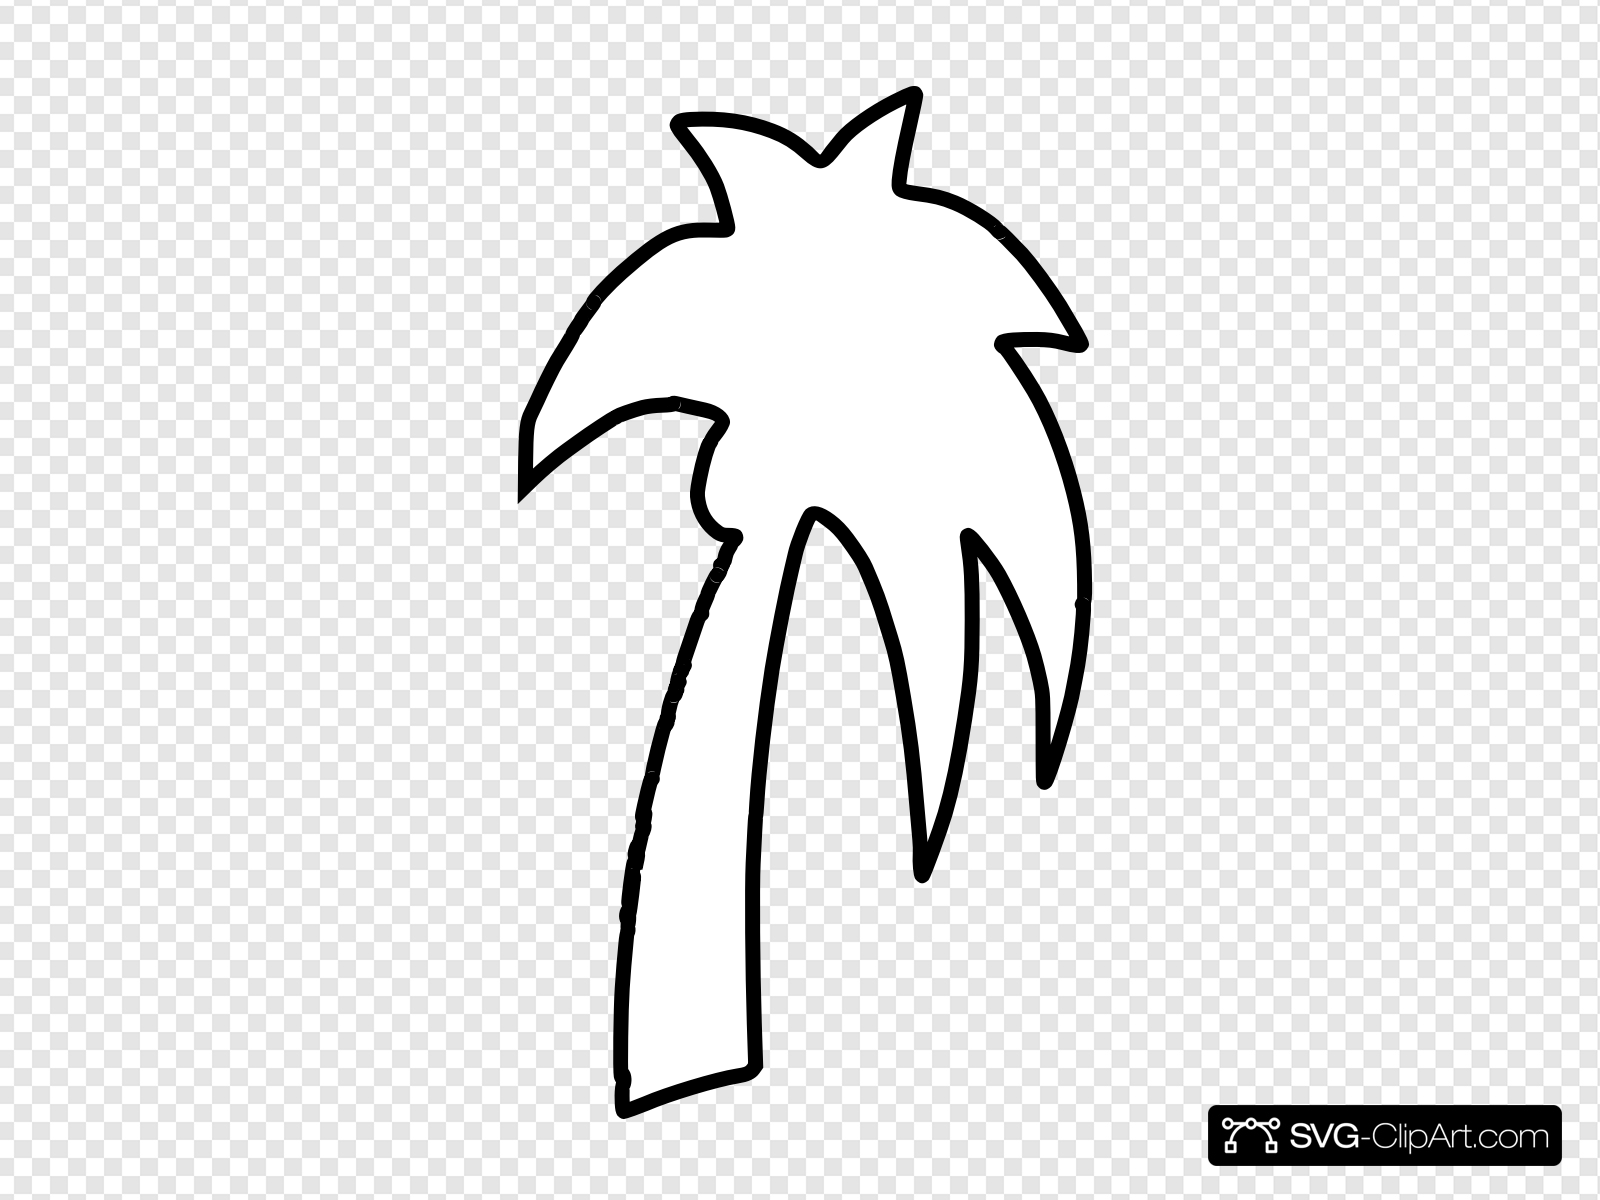 Palm Tree Outline Clip art, Icon and SVG.